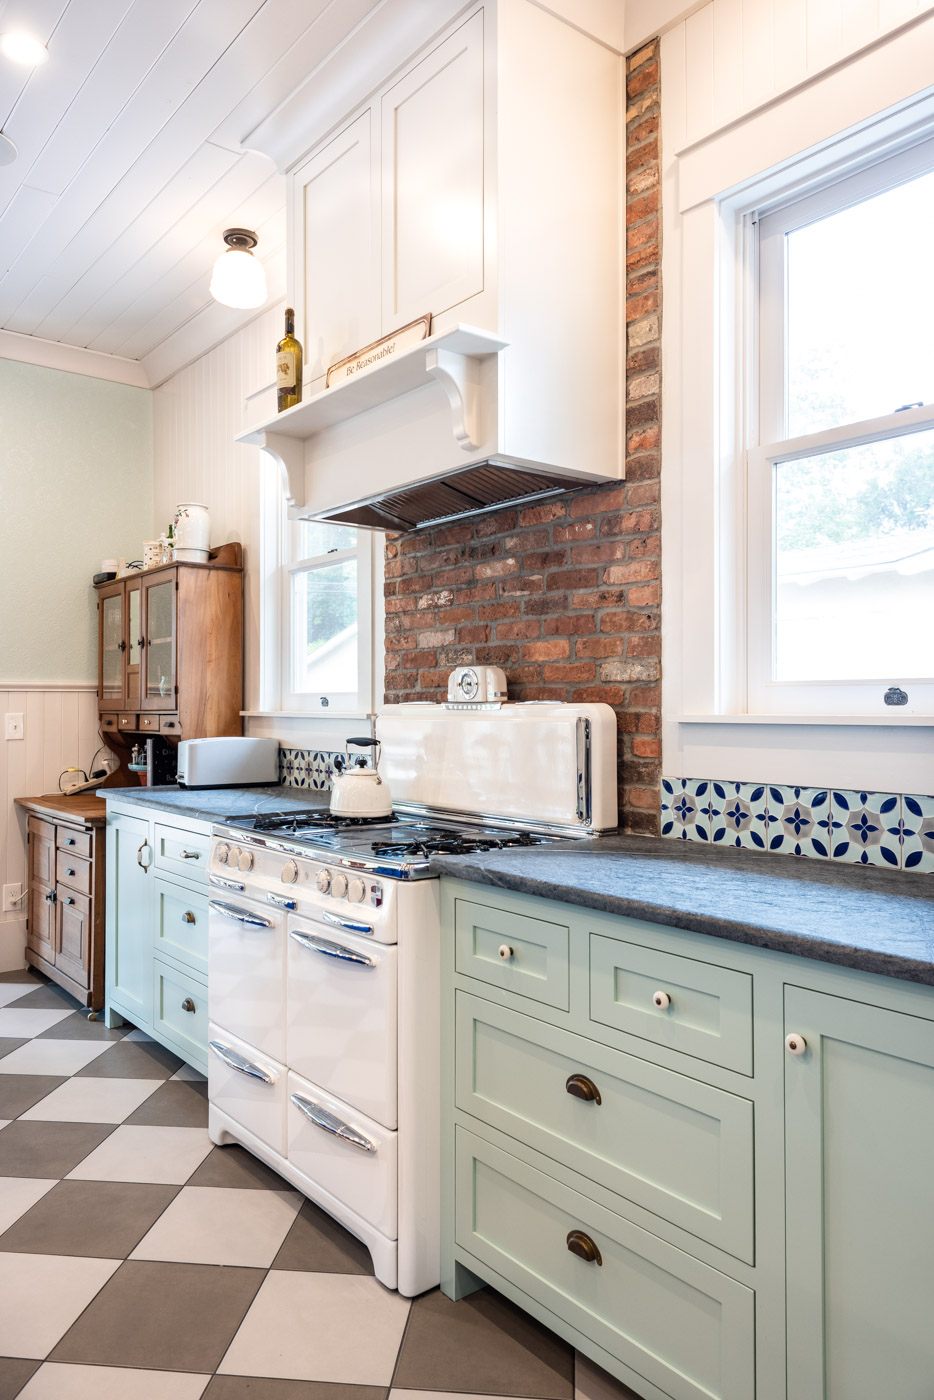 Eclectic Country Craftsman kitchen with custom blue painted cabinets and custom range hood